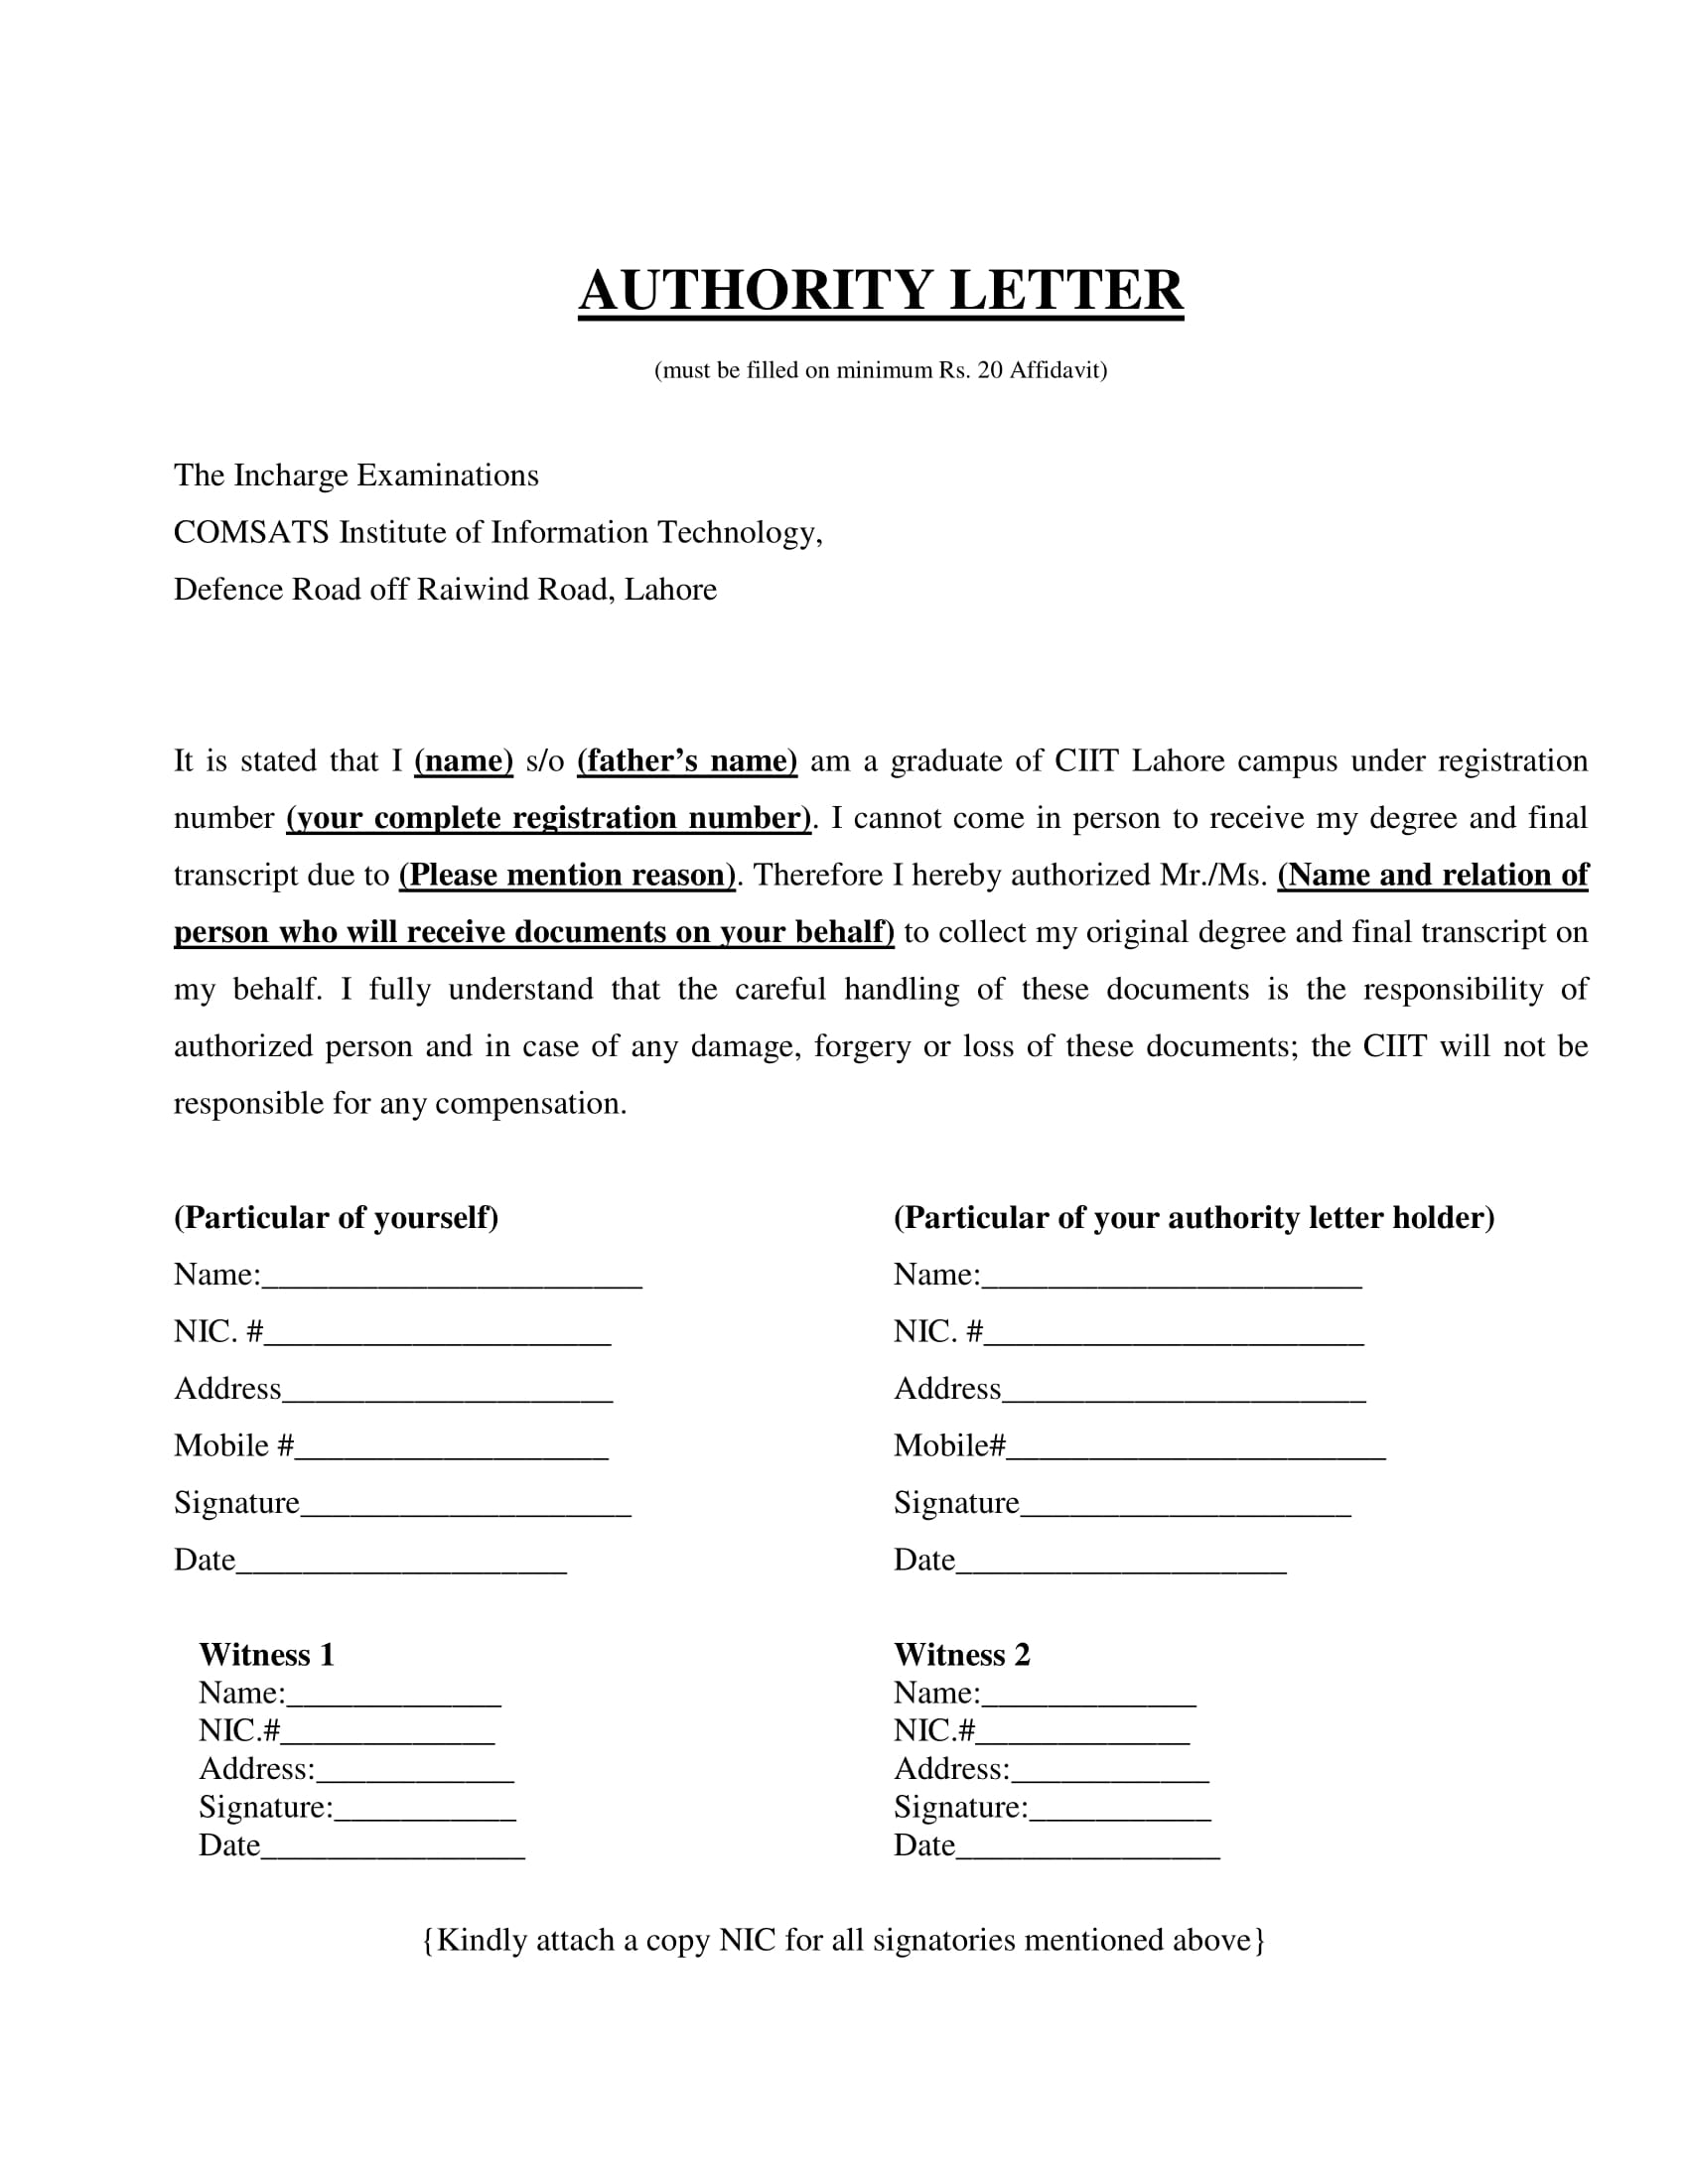 authorization letter to receive degree and final transcript example 1